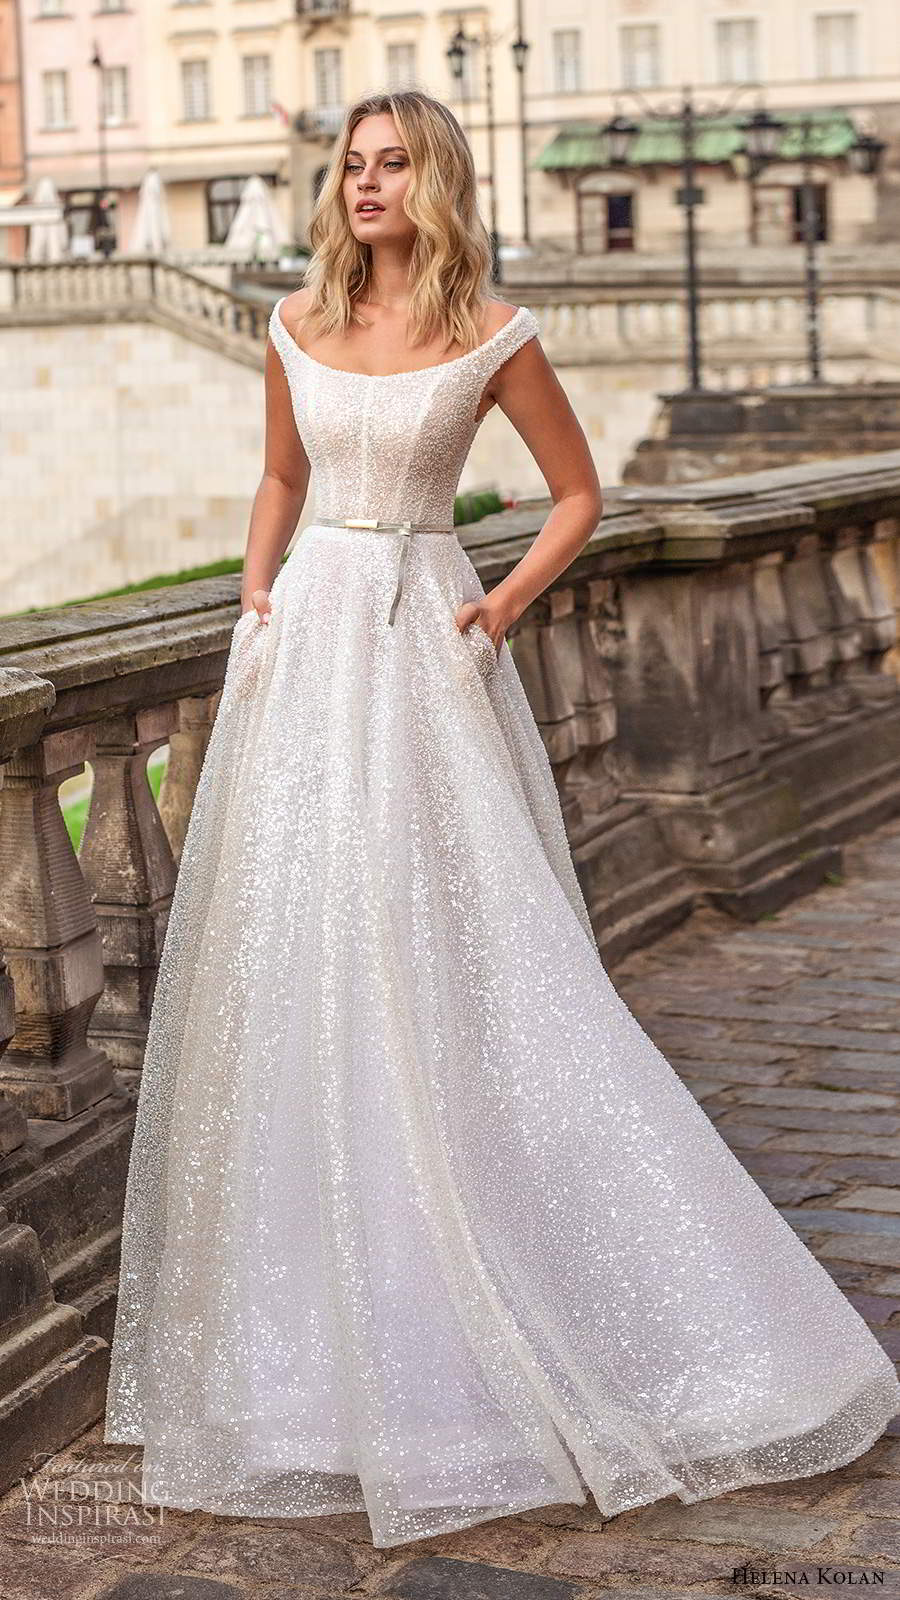 helena kolan 2020 bridal off shoulder cap sleeves scoop neckline fully embellished glitzy glam a line ball gown wedding dress pockets sweep train (13) mv